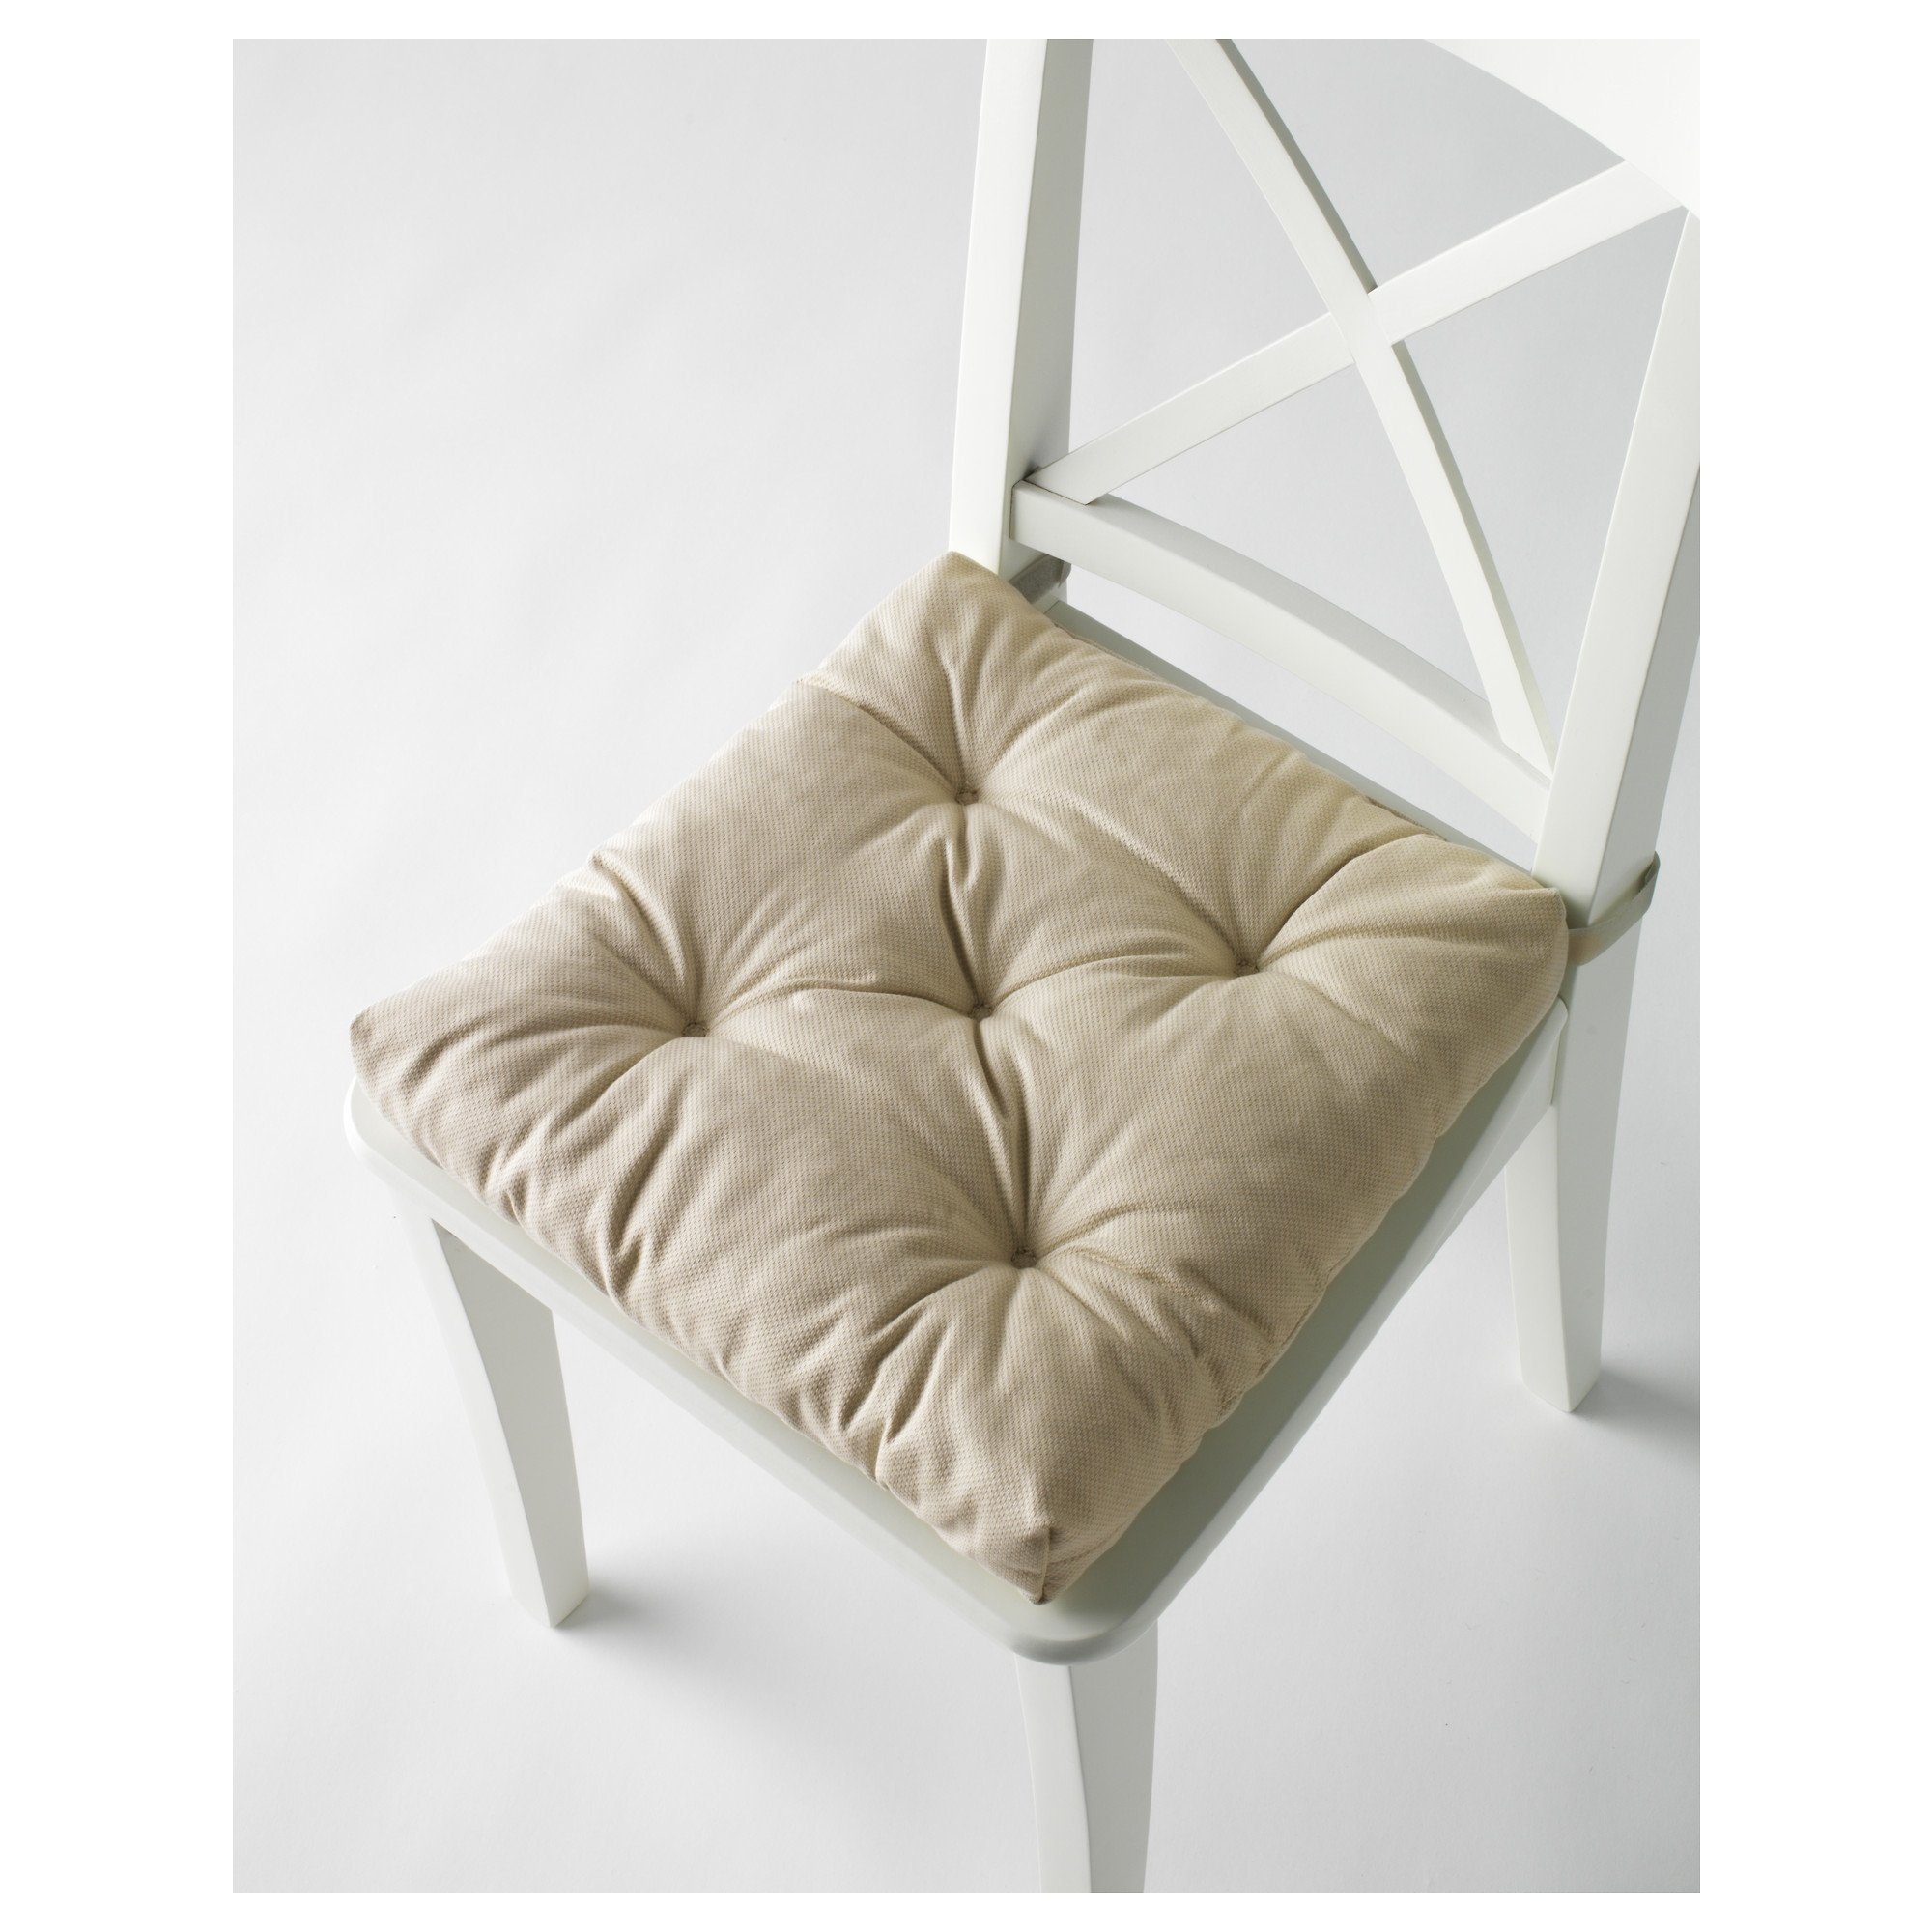 Ikea's MALINDA Chair cushion (5, Light Beige)